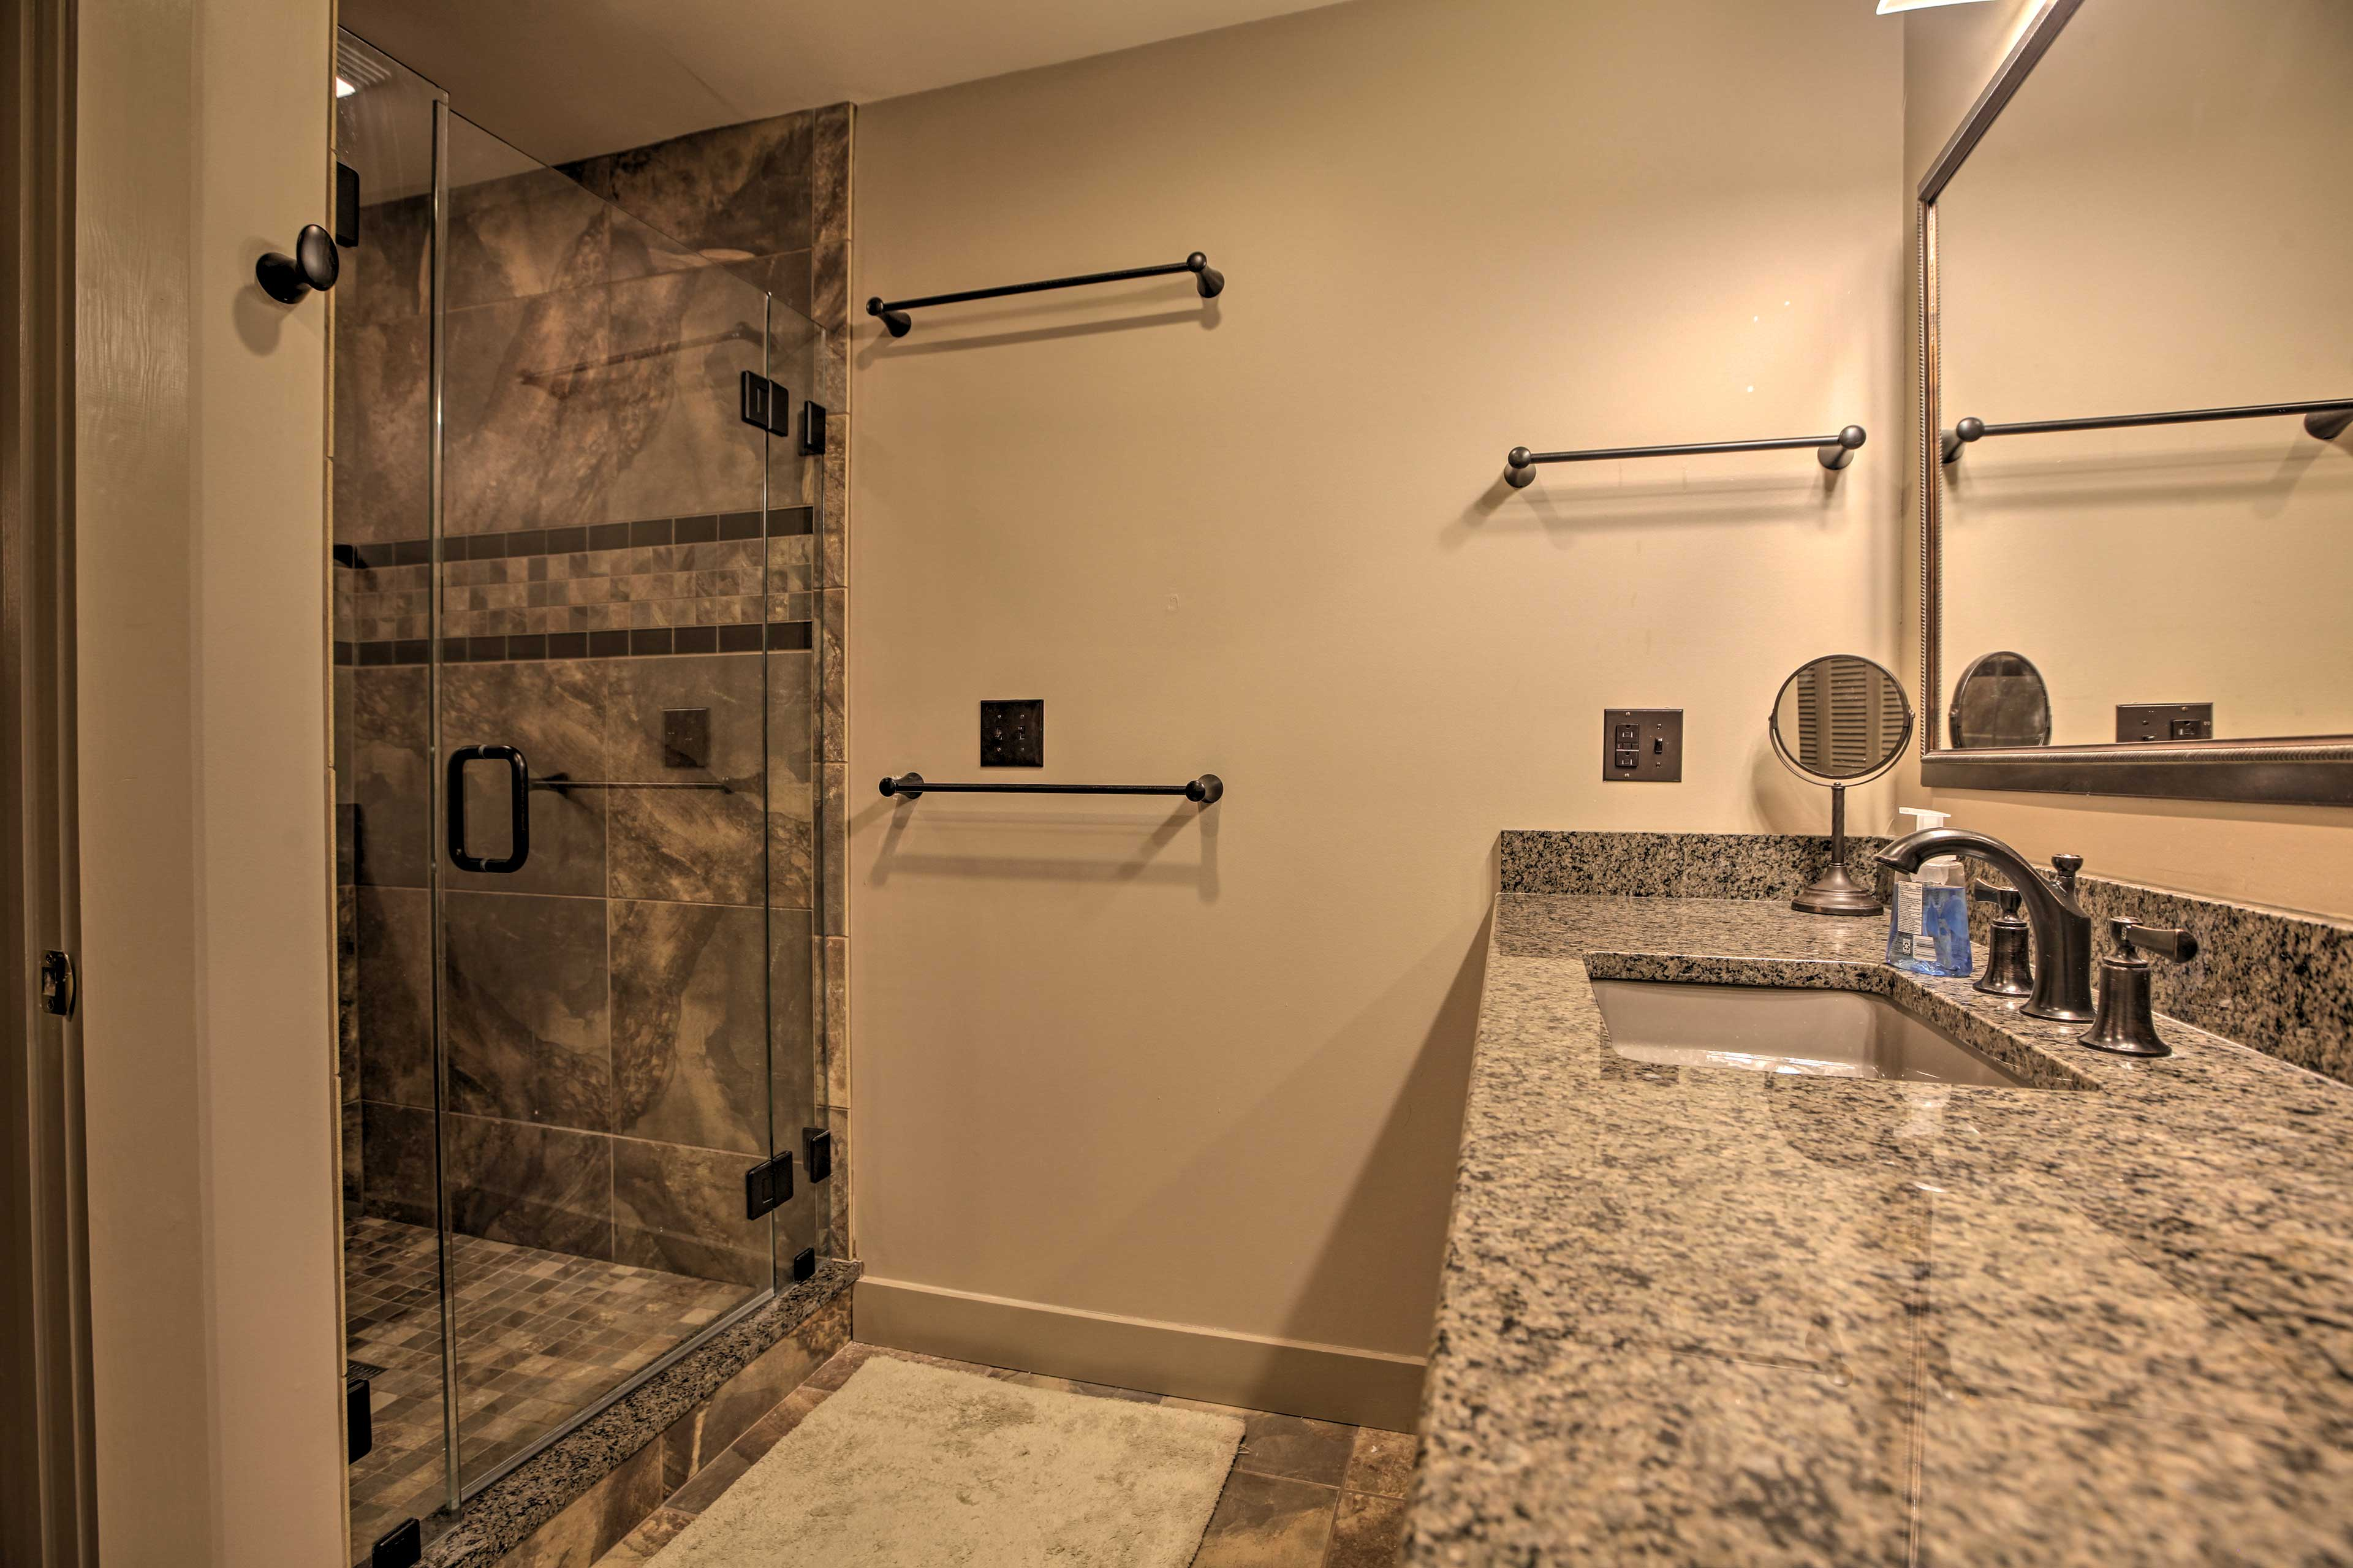 The shower boasts a glass door and designer tile walls.